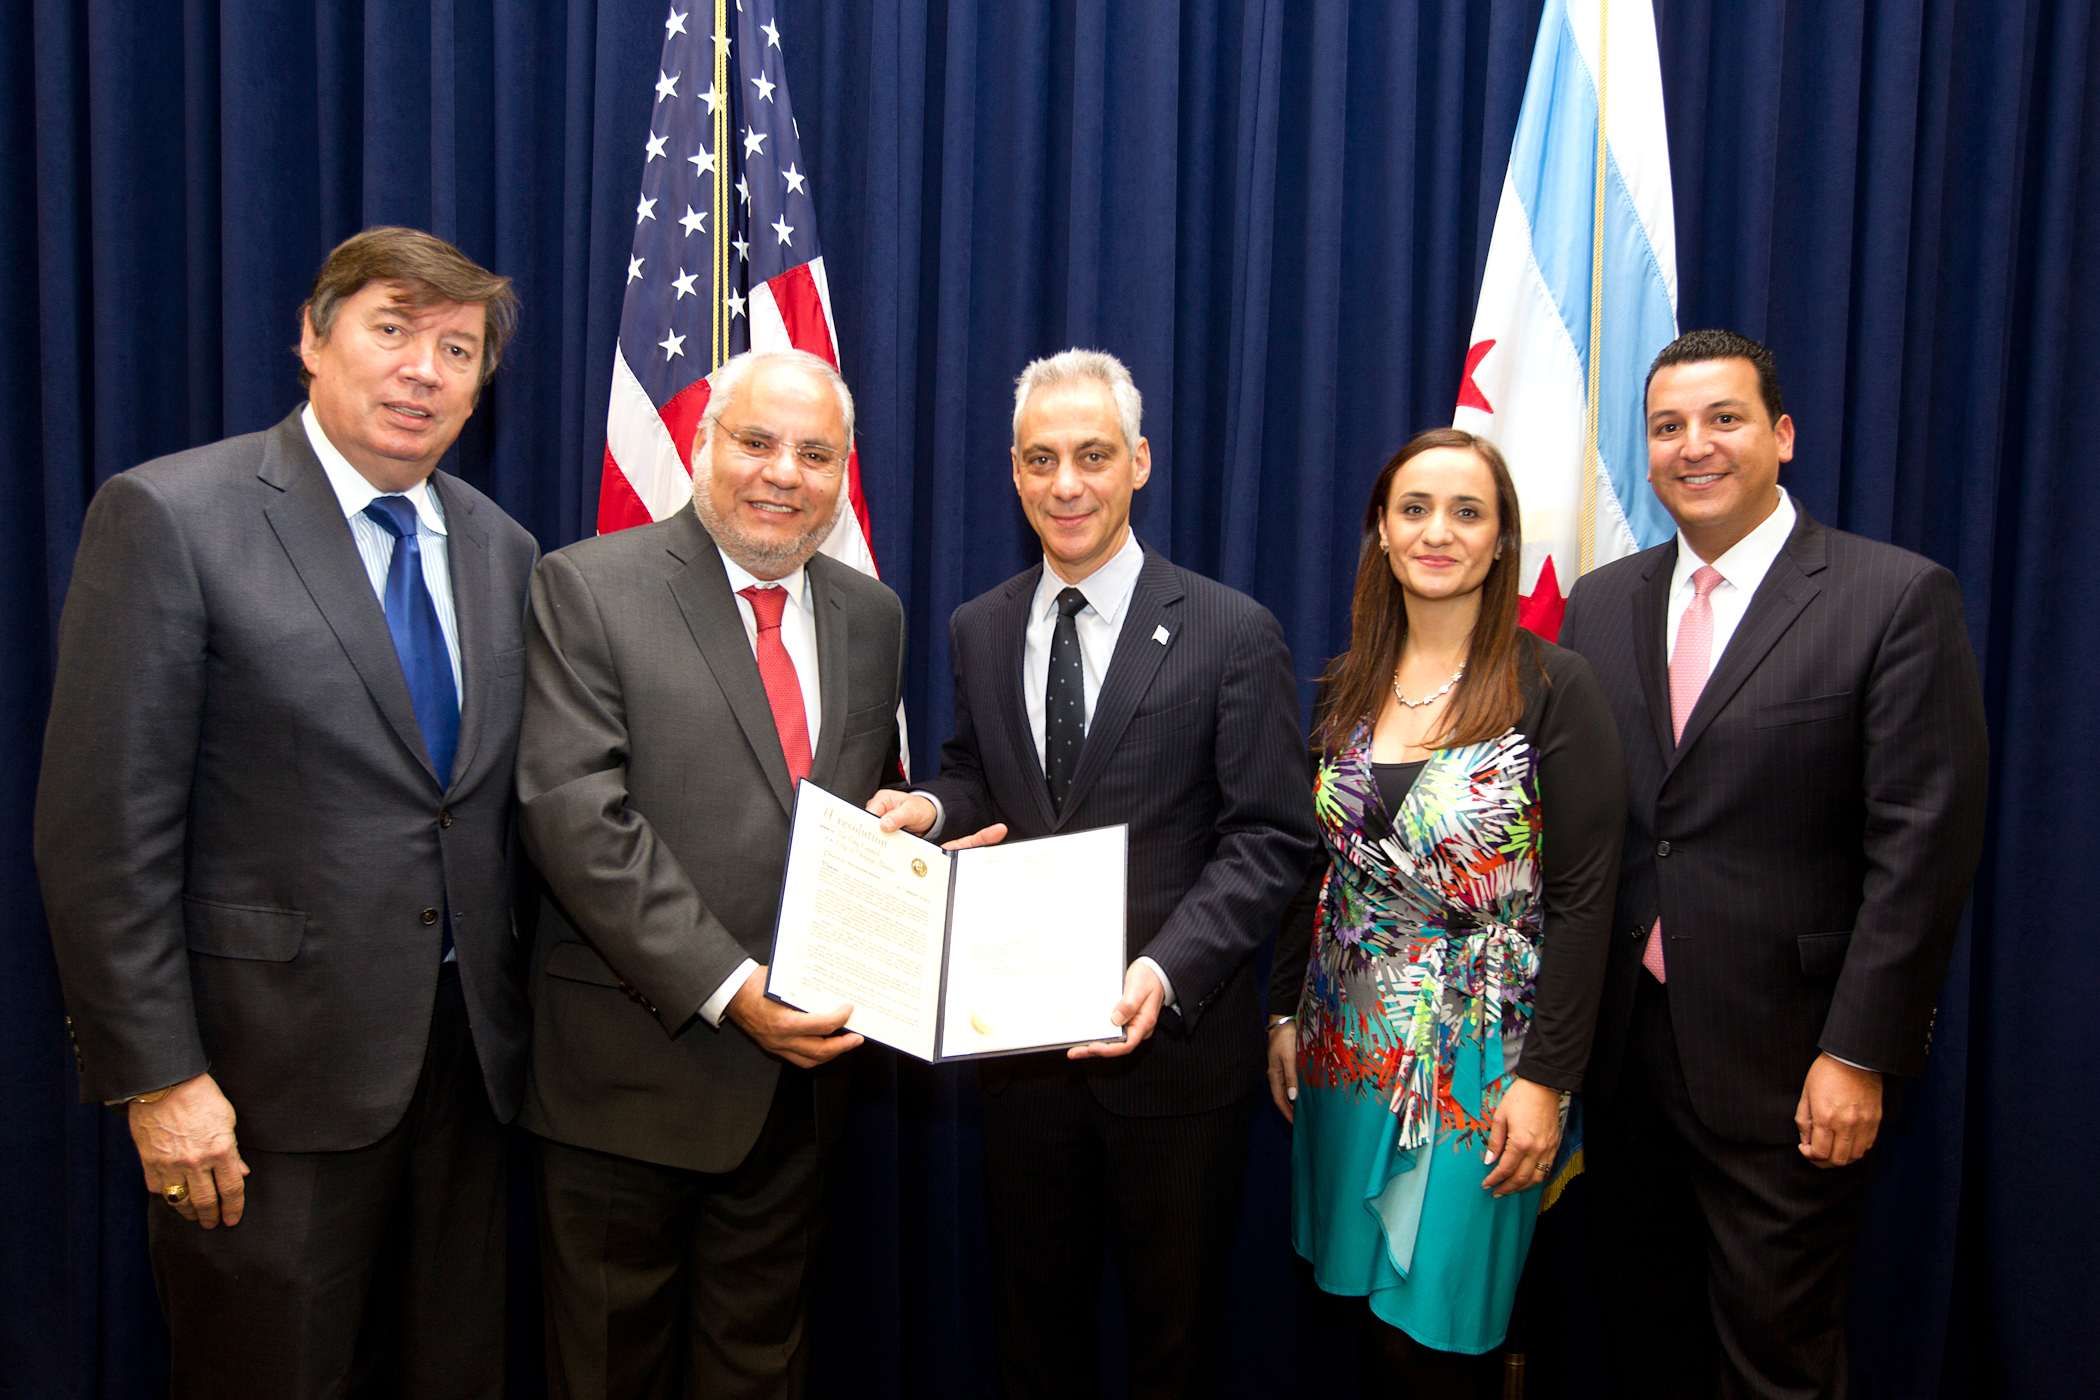 Mexico City Sister City Resolution: Alejandro Silva, Co-Chair of the Mexico City Committee of Chicago Sister Cities International; the Honorable Carlos Martín Jiménez Macías, Consul General of the United Mexican States; Chicago Mayor Rahm Emanuel; Adriana Escarcega, Co-Chair of the Mexico City Committee of Chicago Sister Cities International; and Leroy Allala, Executive Director of Chicago Sister Cities International. Photo by Brooke Collins, City of Chicago.